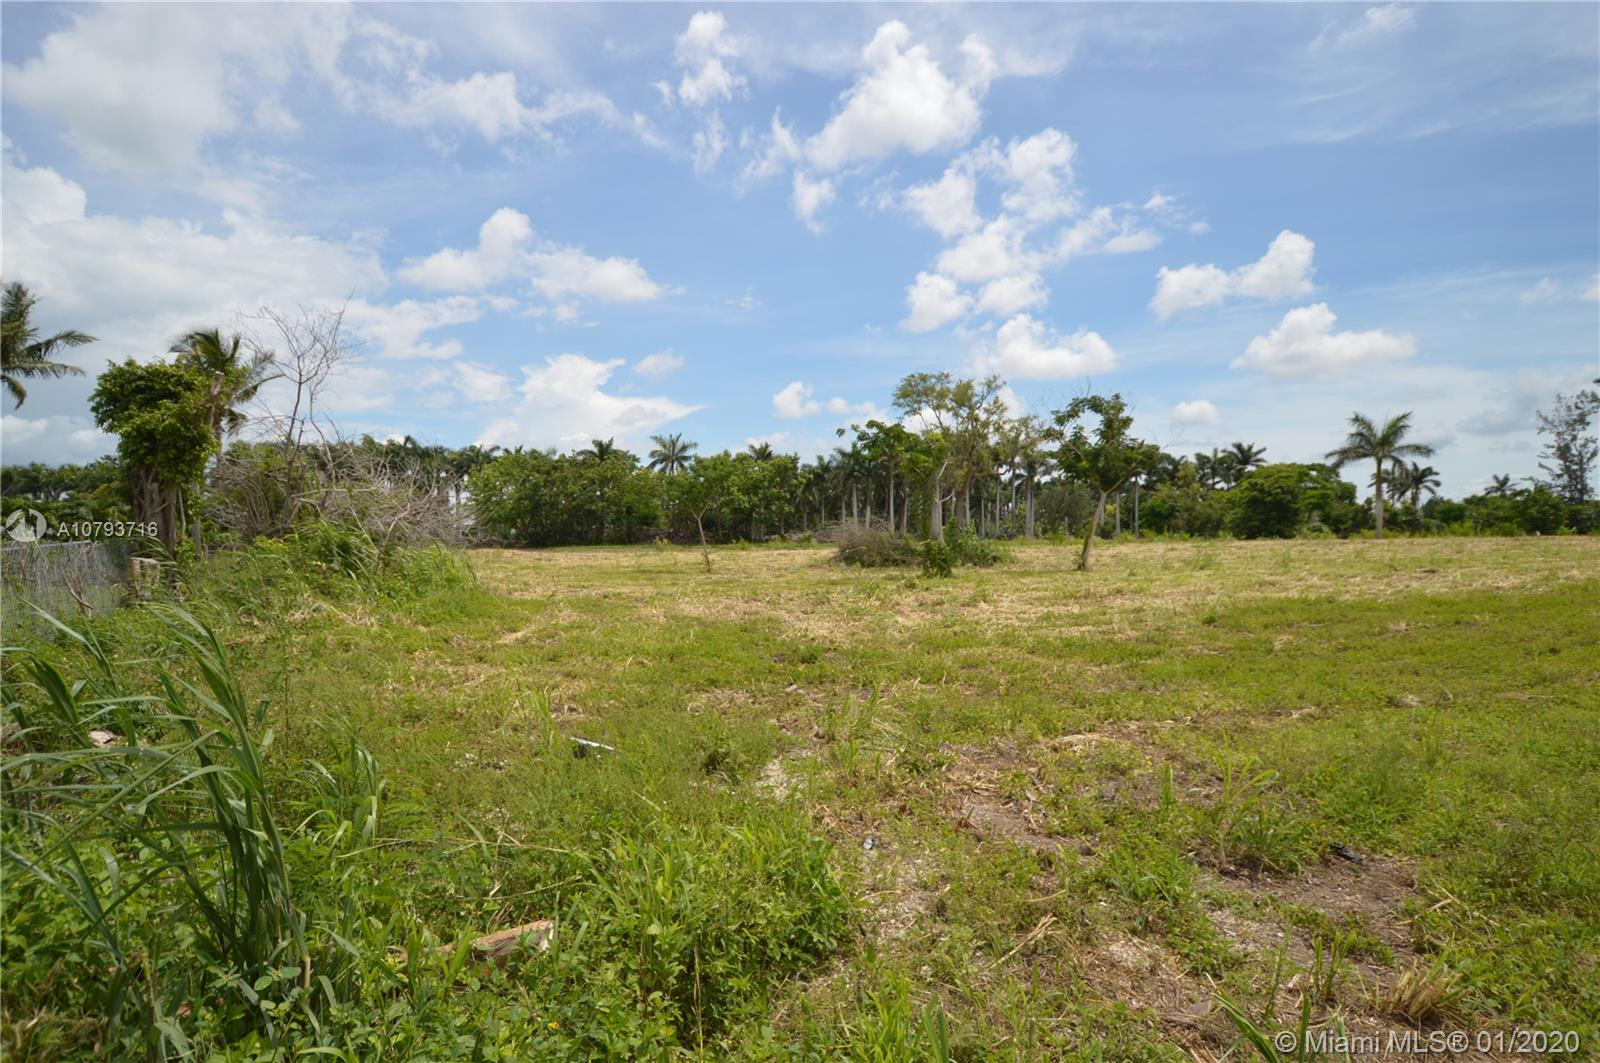 16300 SW 294, Homestead, FL 33033 - Homestead, FL real estate listing